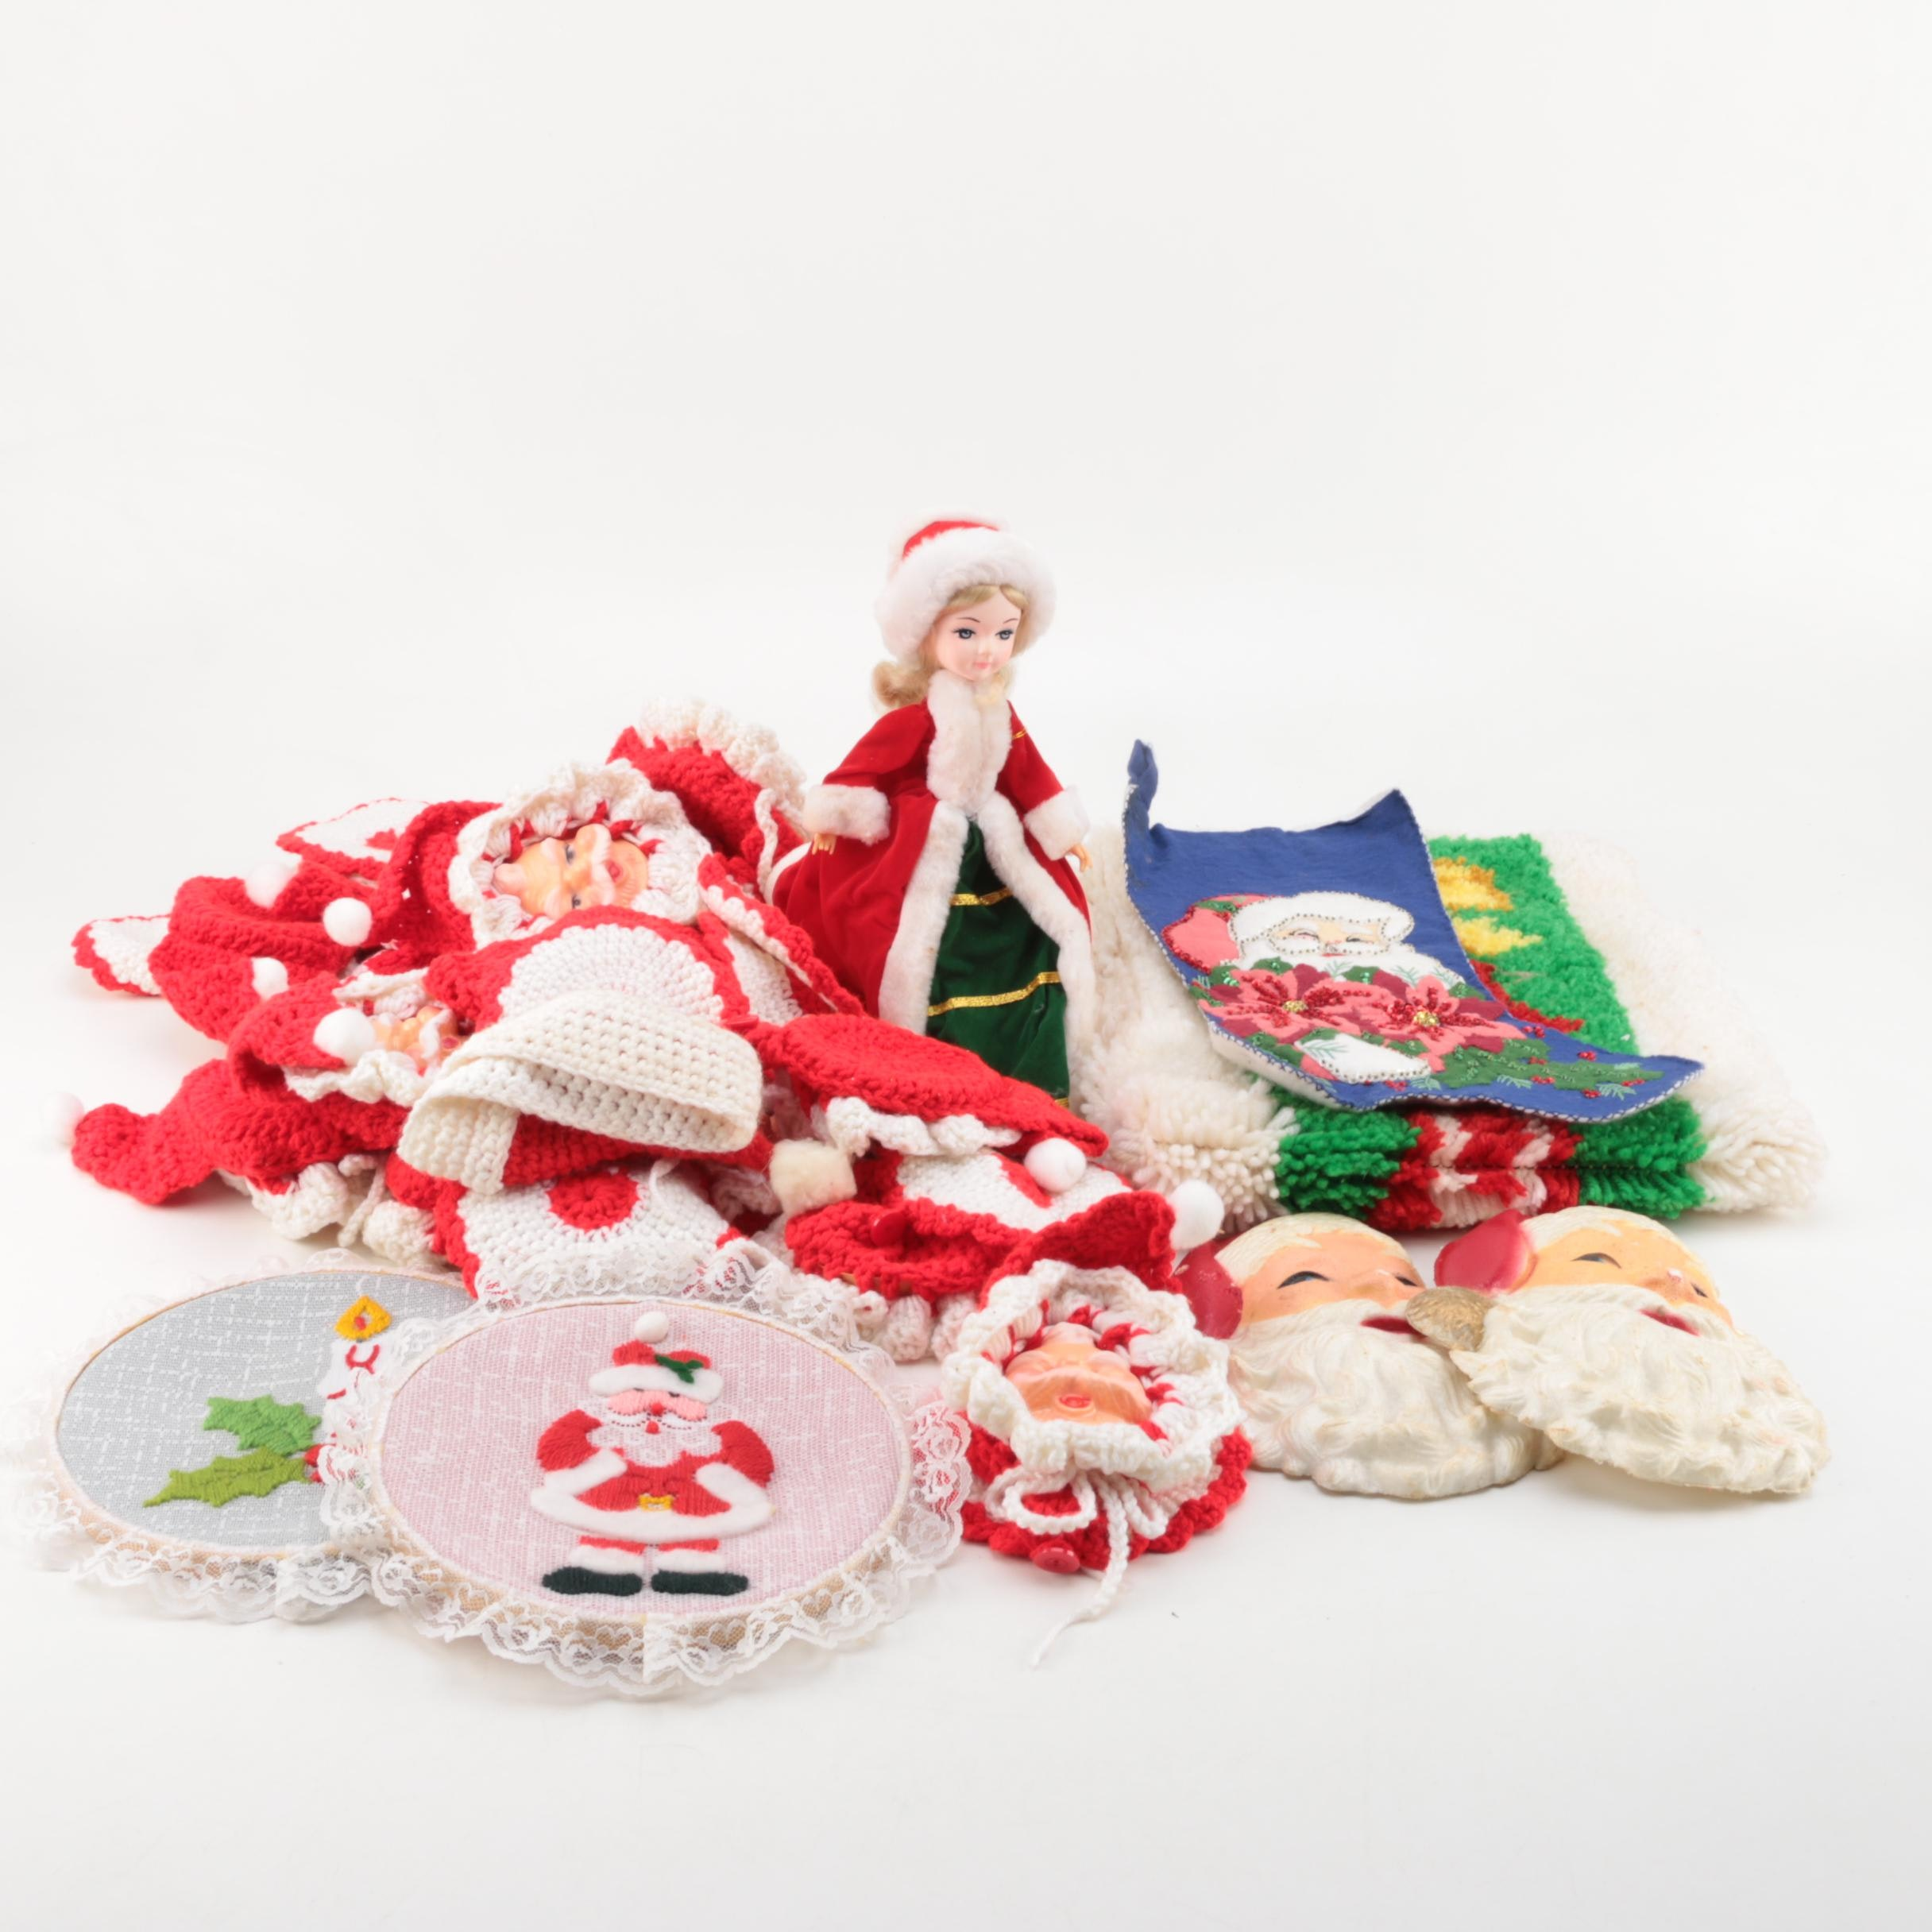 Vintage Christmas Musical Figurine and Crocheted Ornaments